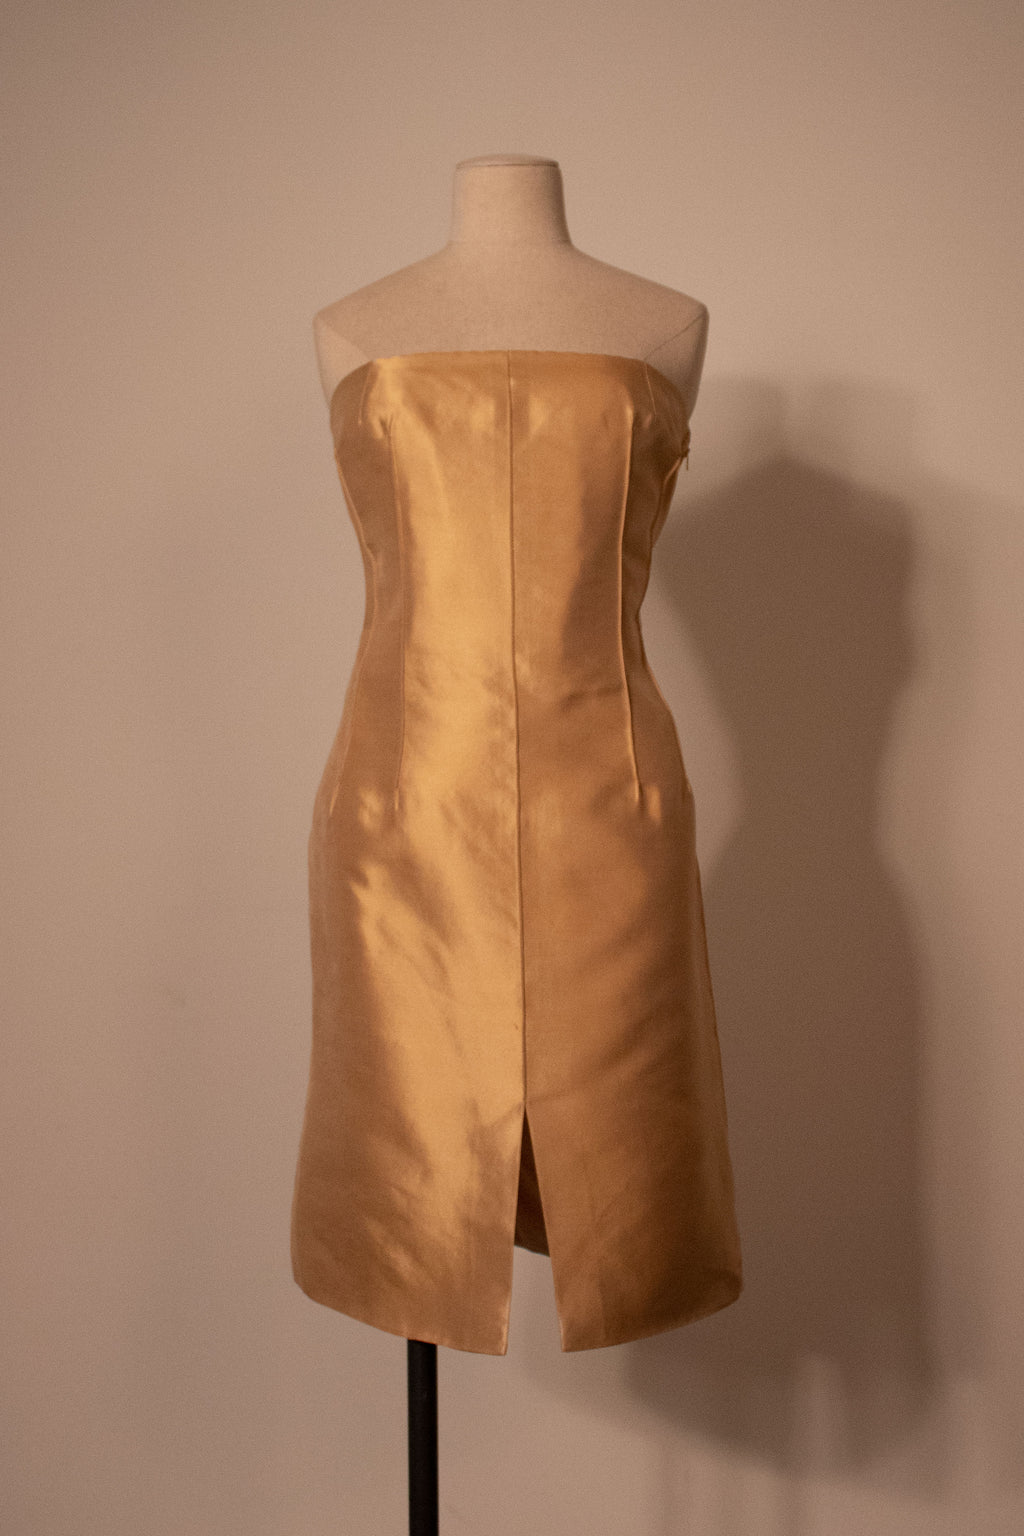 YSL champagne golden satin strapless bustier dress